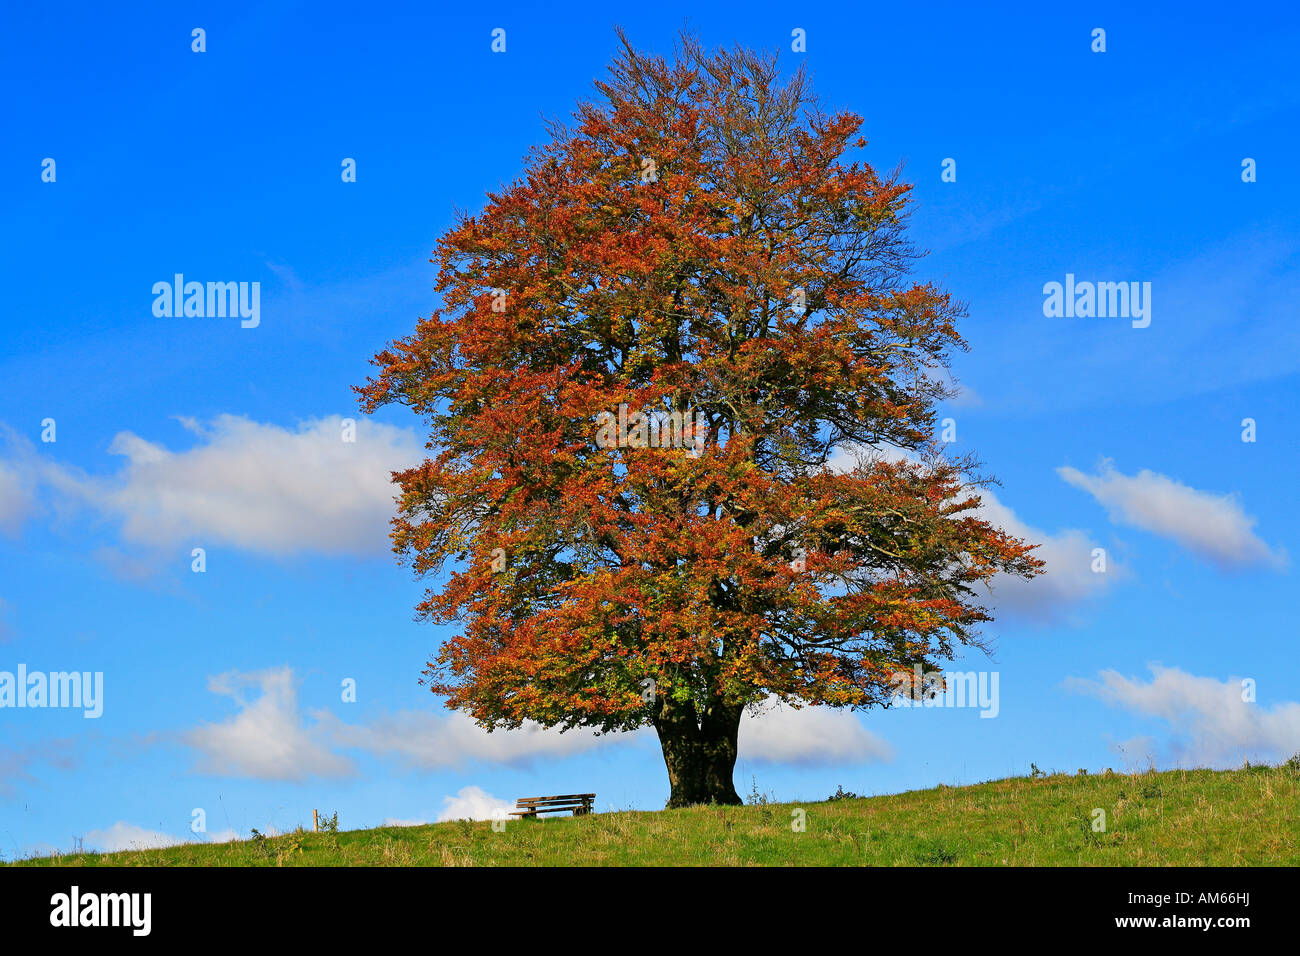 Autumnally coloured beech foliage (Fagus silvatica), Westerwald, Hesse, Germany - Stock Image